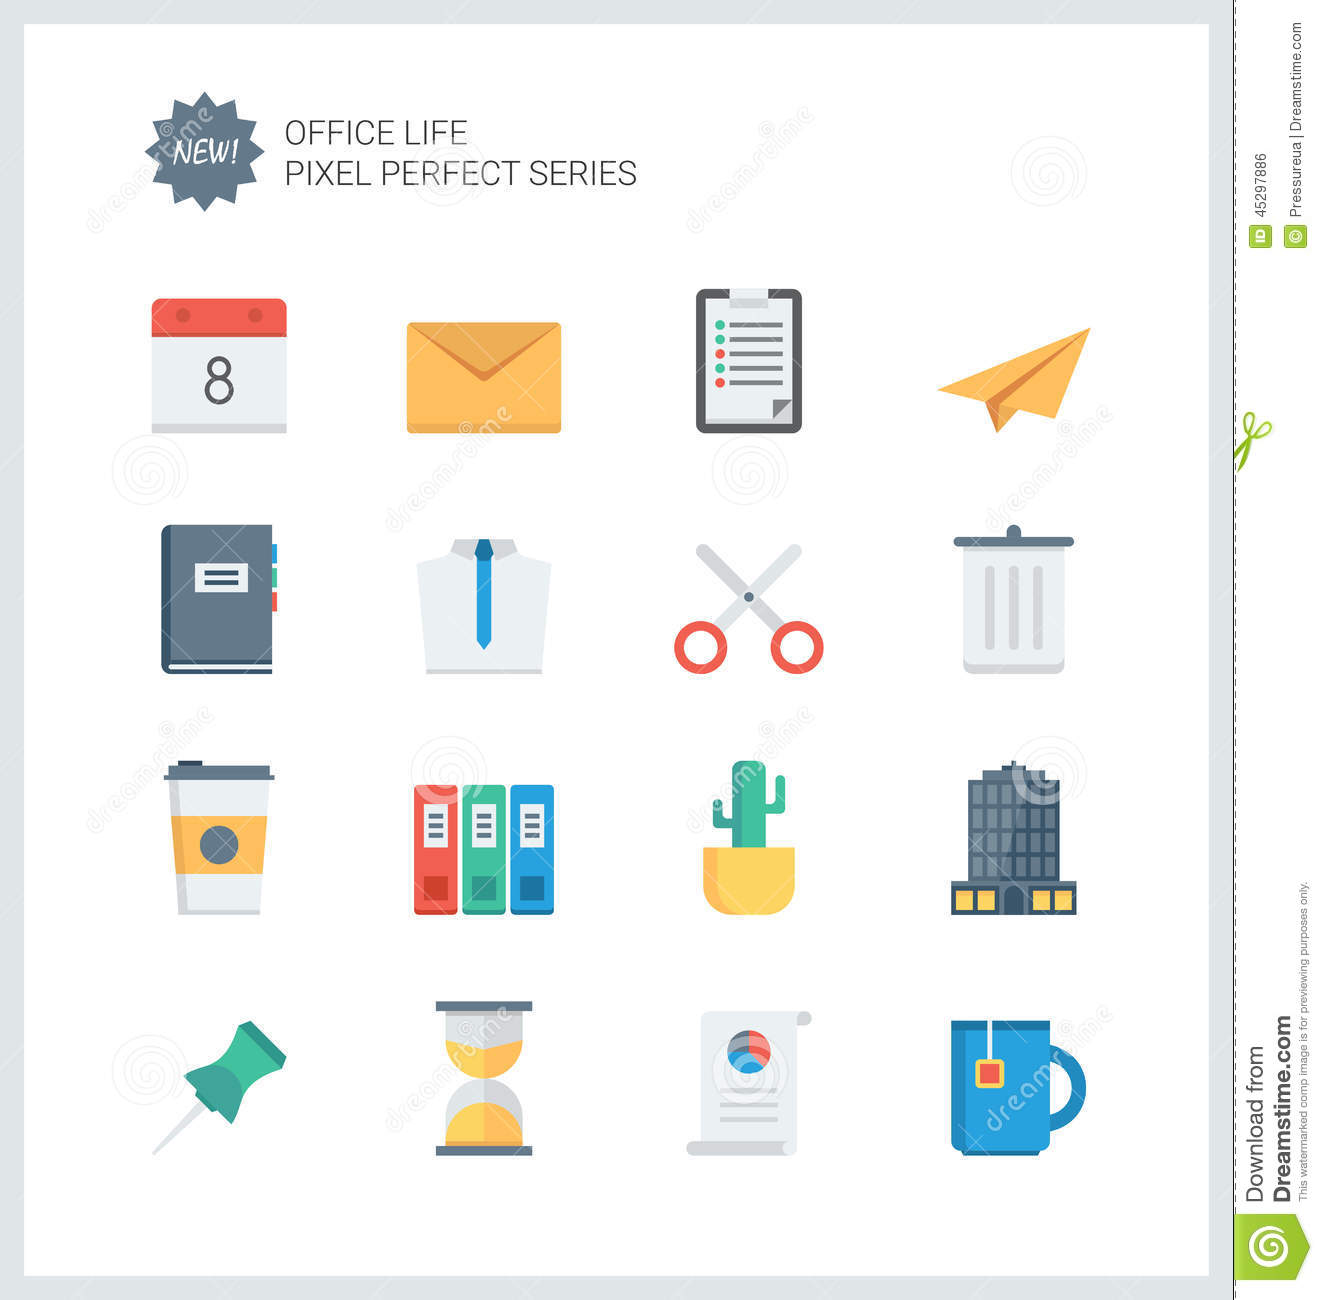 office design tool pixel perfect office tools flat icons stock vector image